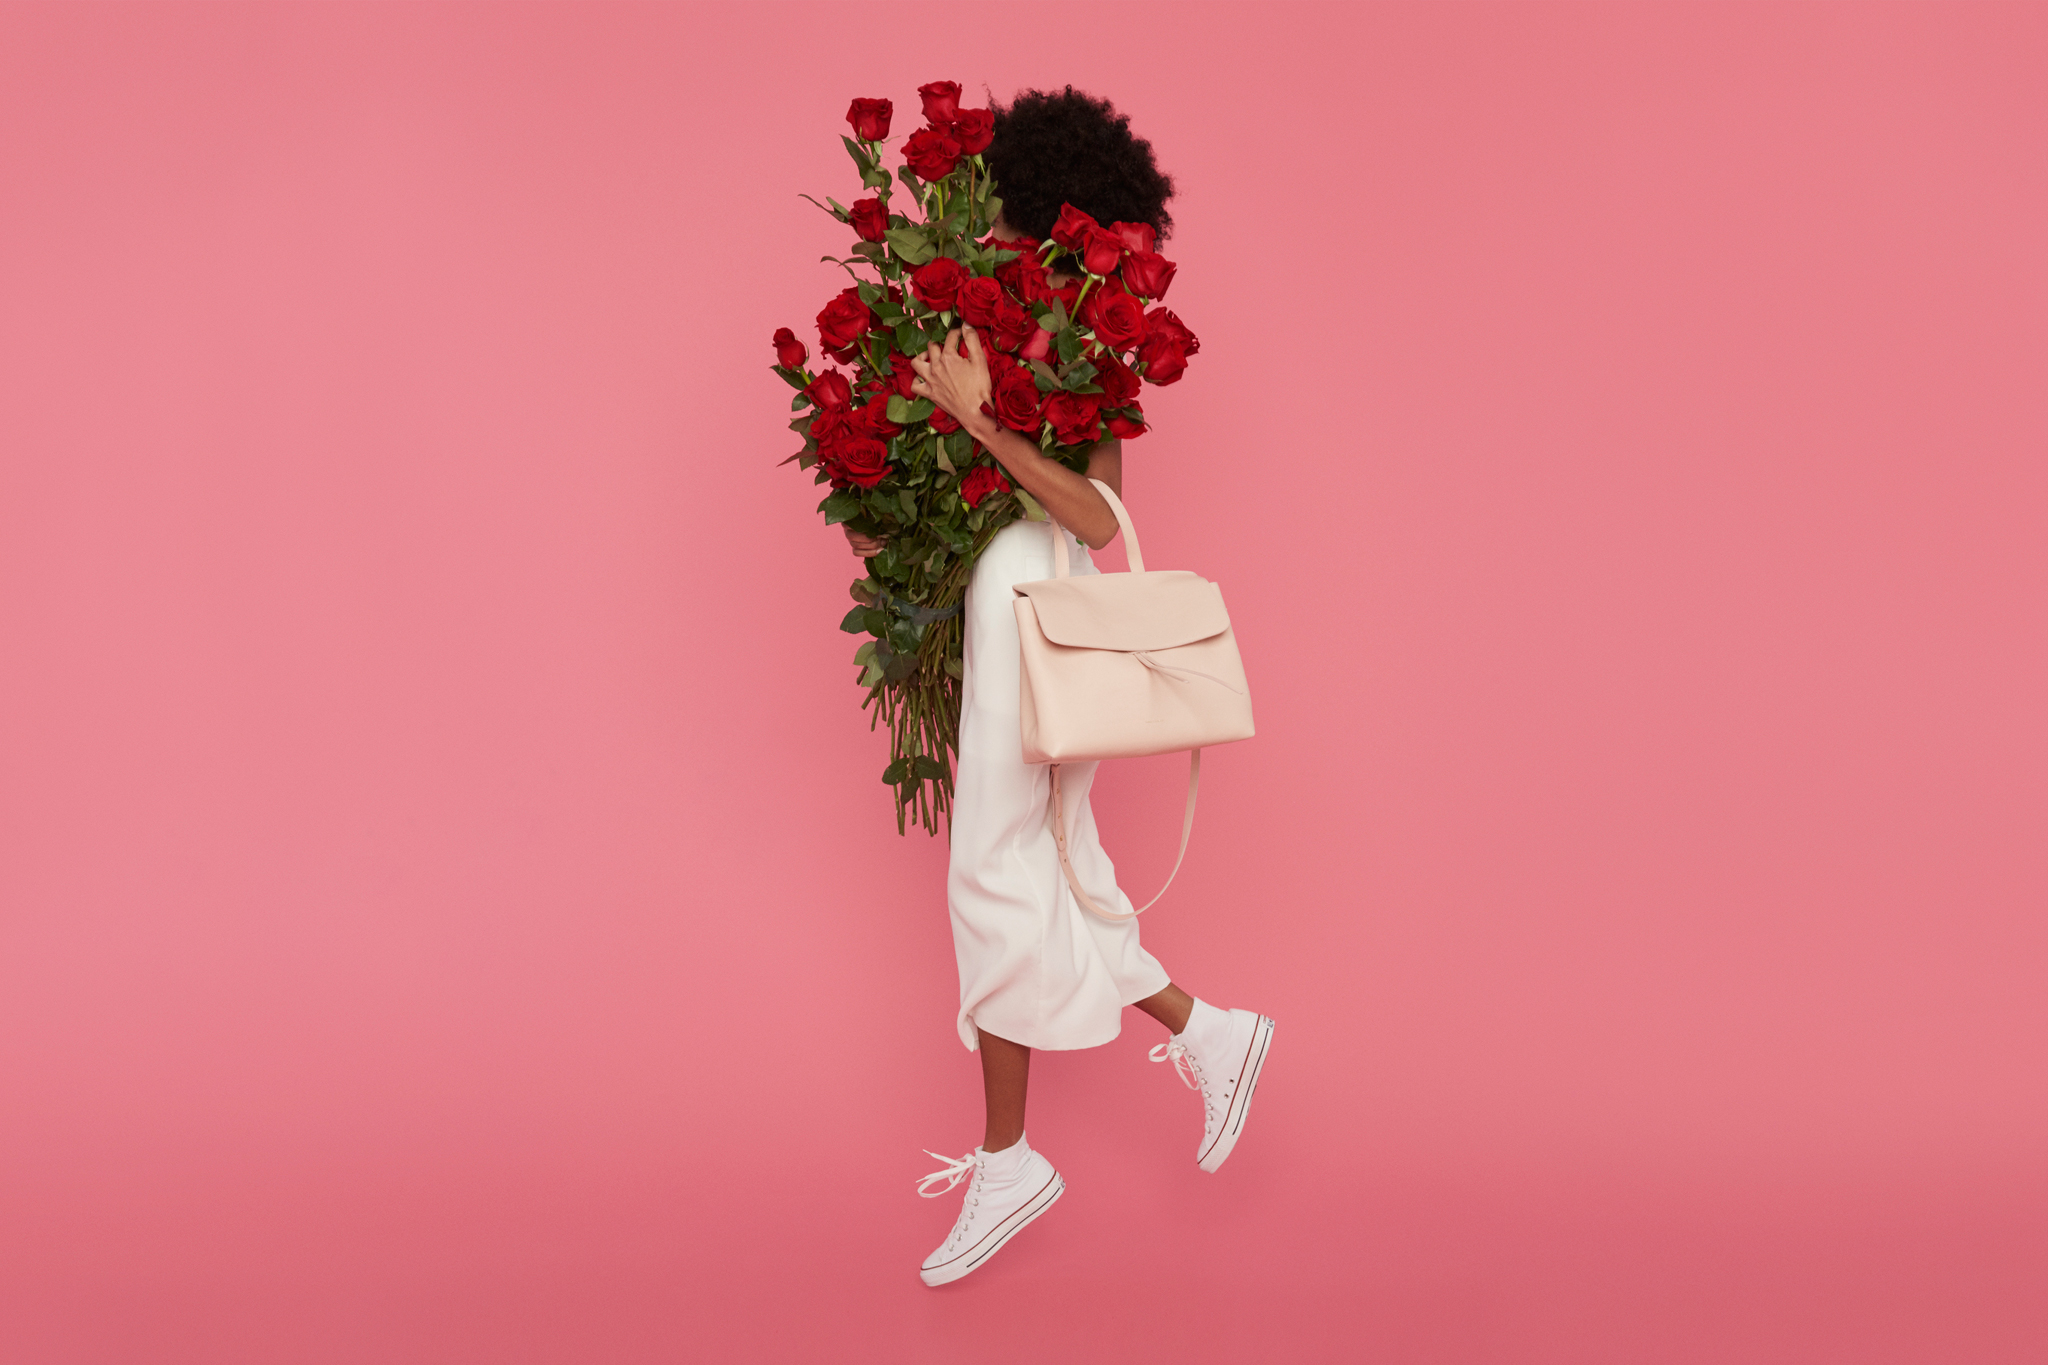 MG-AW15-5_MANSUR-GAVRIEL-ANTI-IT-BAG_MANSUR-GAVRIEL-THE-LADY-BAG_MANSUR-GAVRIEL-THE-CROSSBODY_MANSUR-GAVRIEL-5